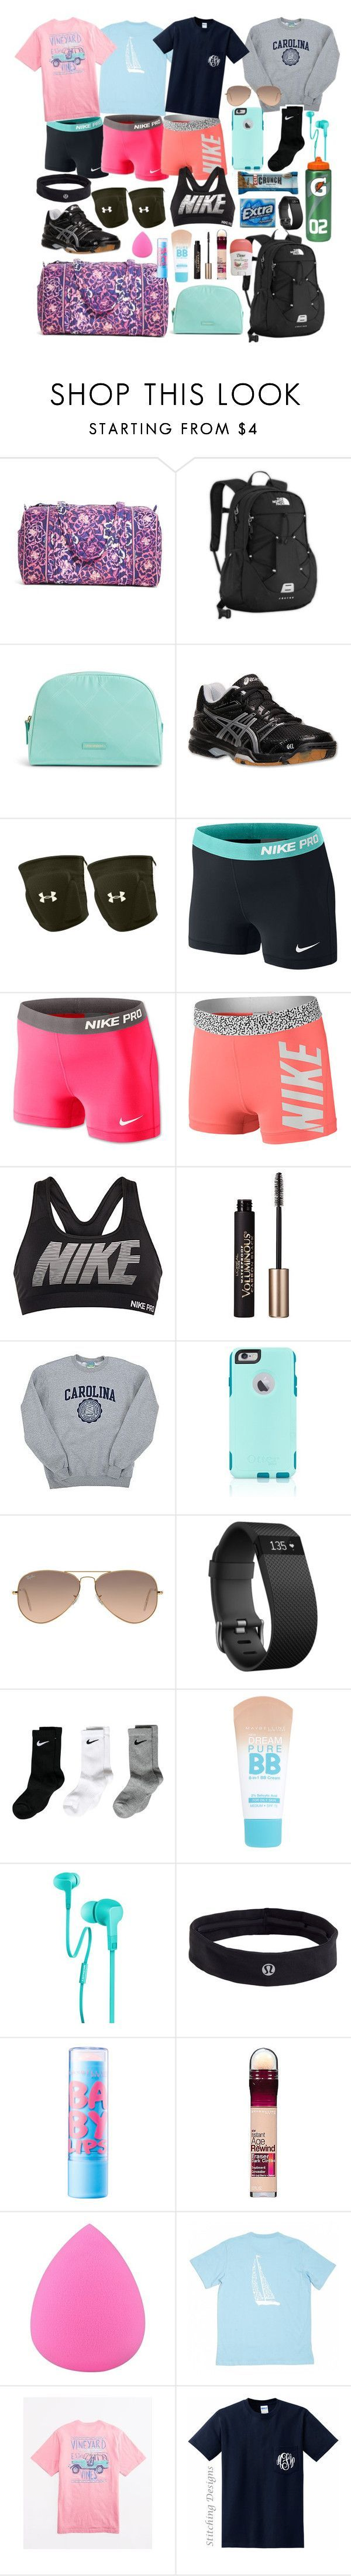 """Volleyball Camp Essentials"" by whalesandprints ❤ liked on Polyvore featuring Vera Bradley, The North Face, Asics, Under Armour, NIKE, L'Oréal Paris, Champion, OtterBox, Ray-Ban and Fitbit"